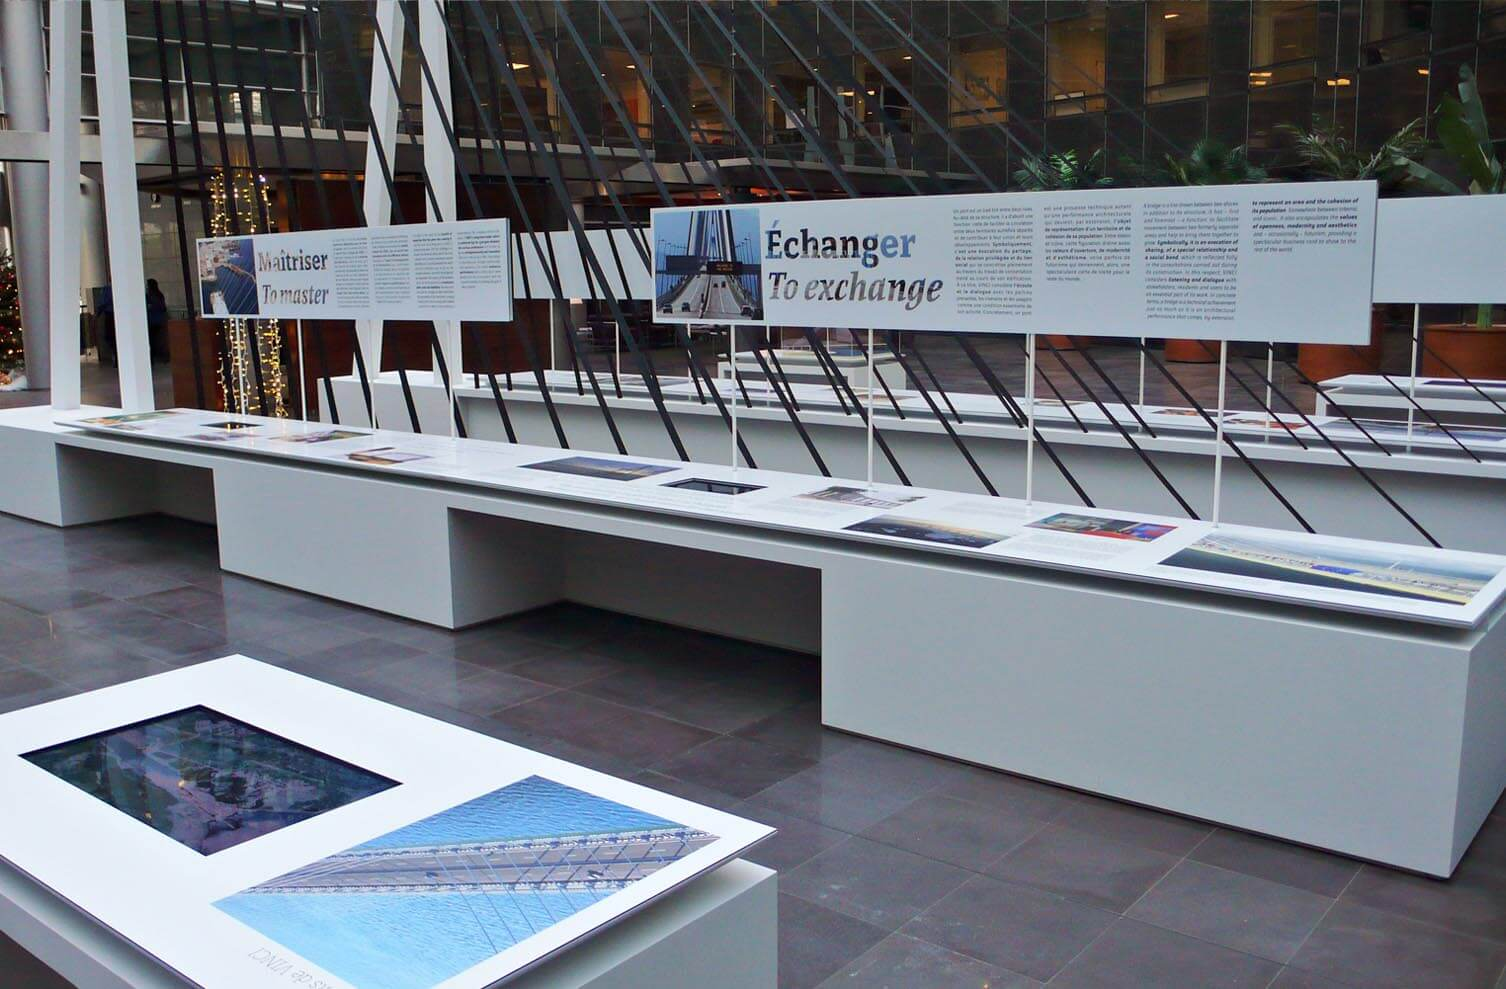 Image Expositions groupe Vinci 9